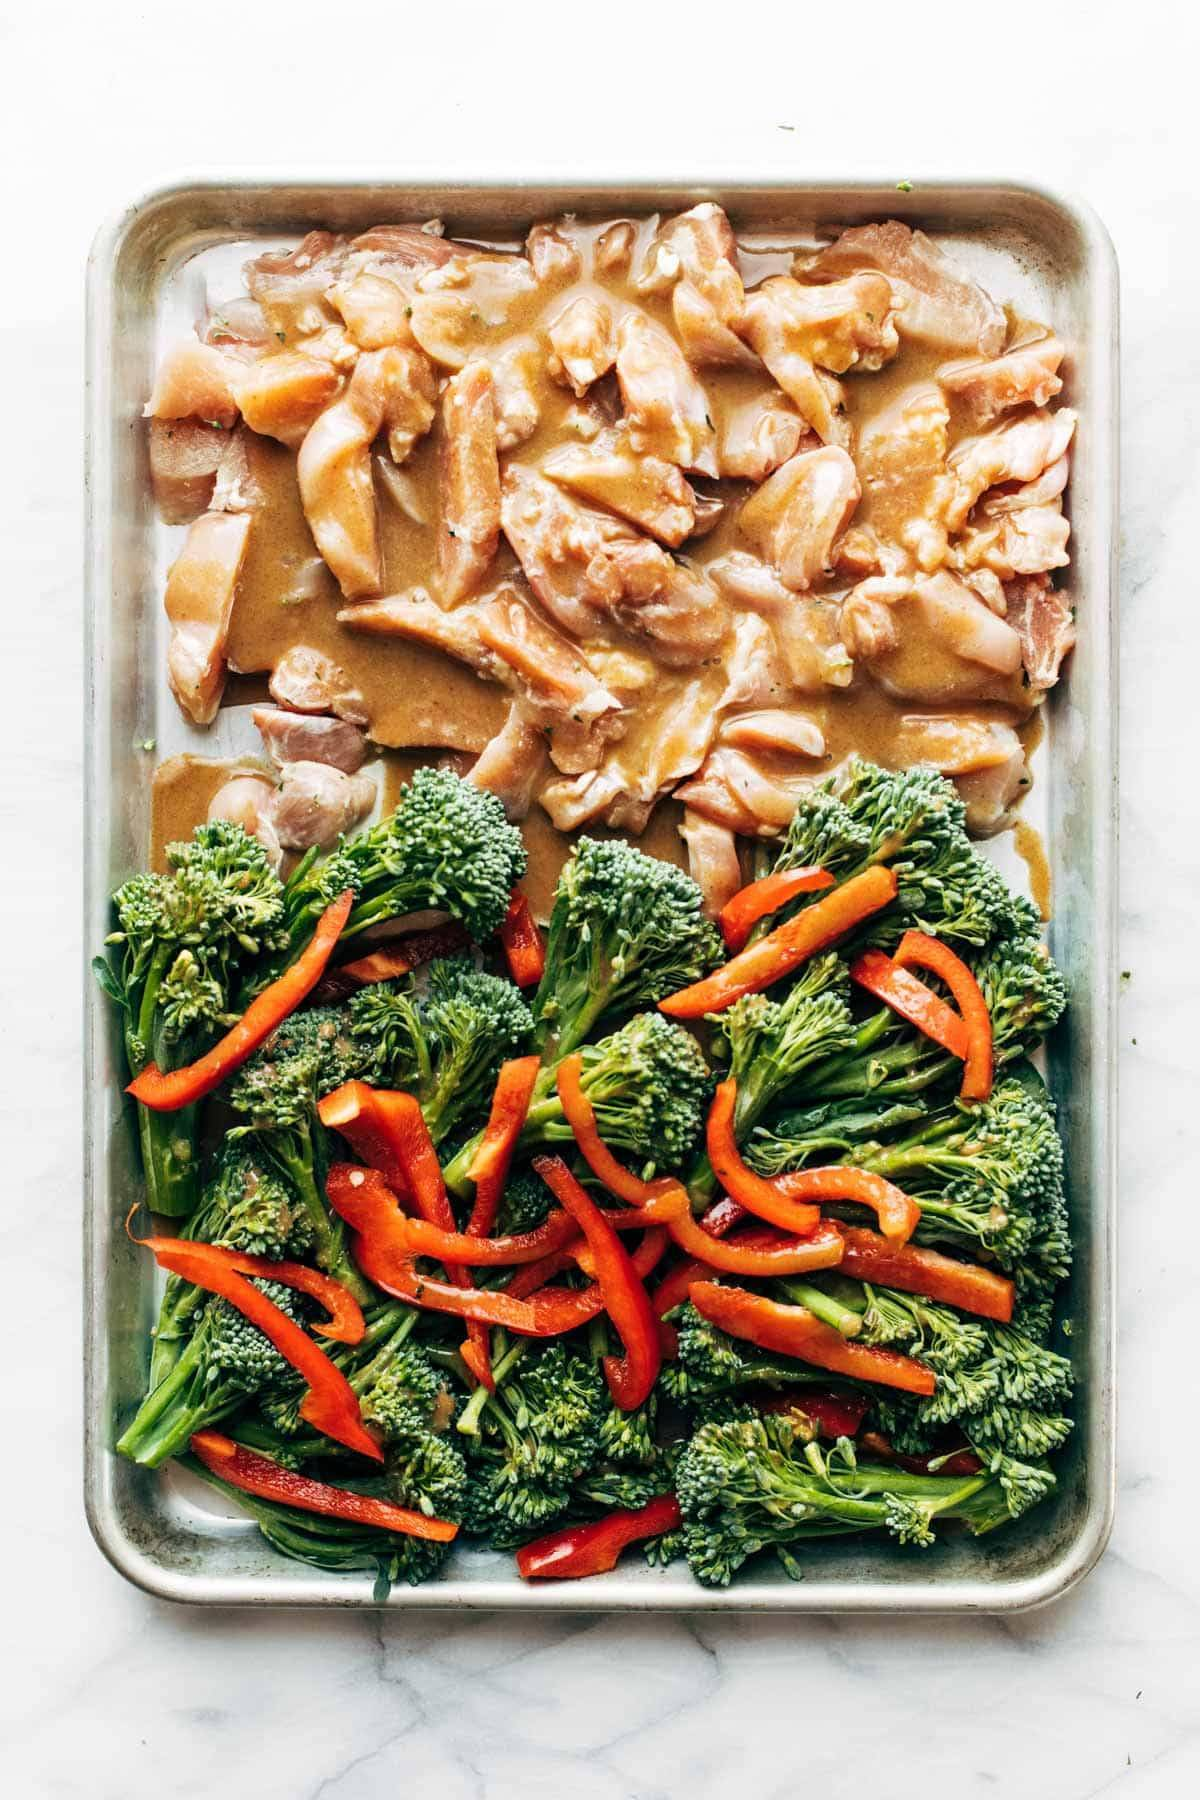 Raw chicken and veggies on a sheet pan.